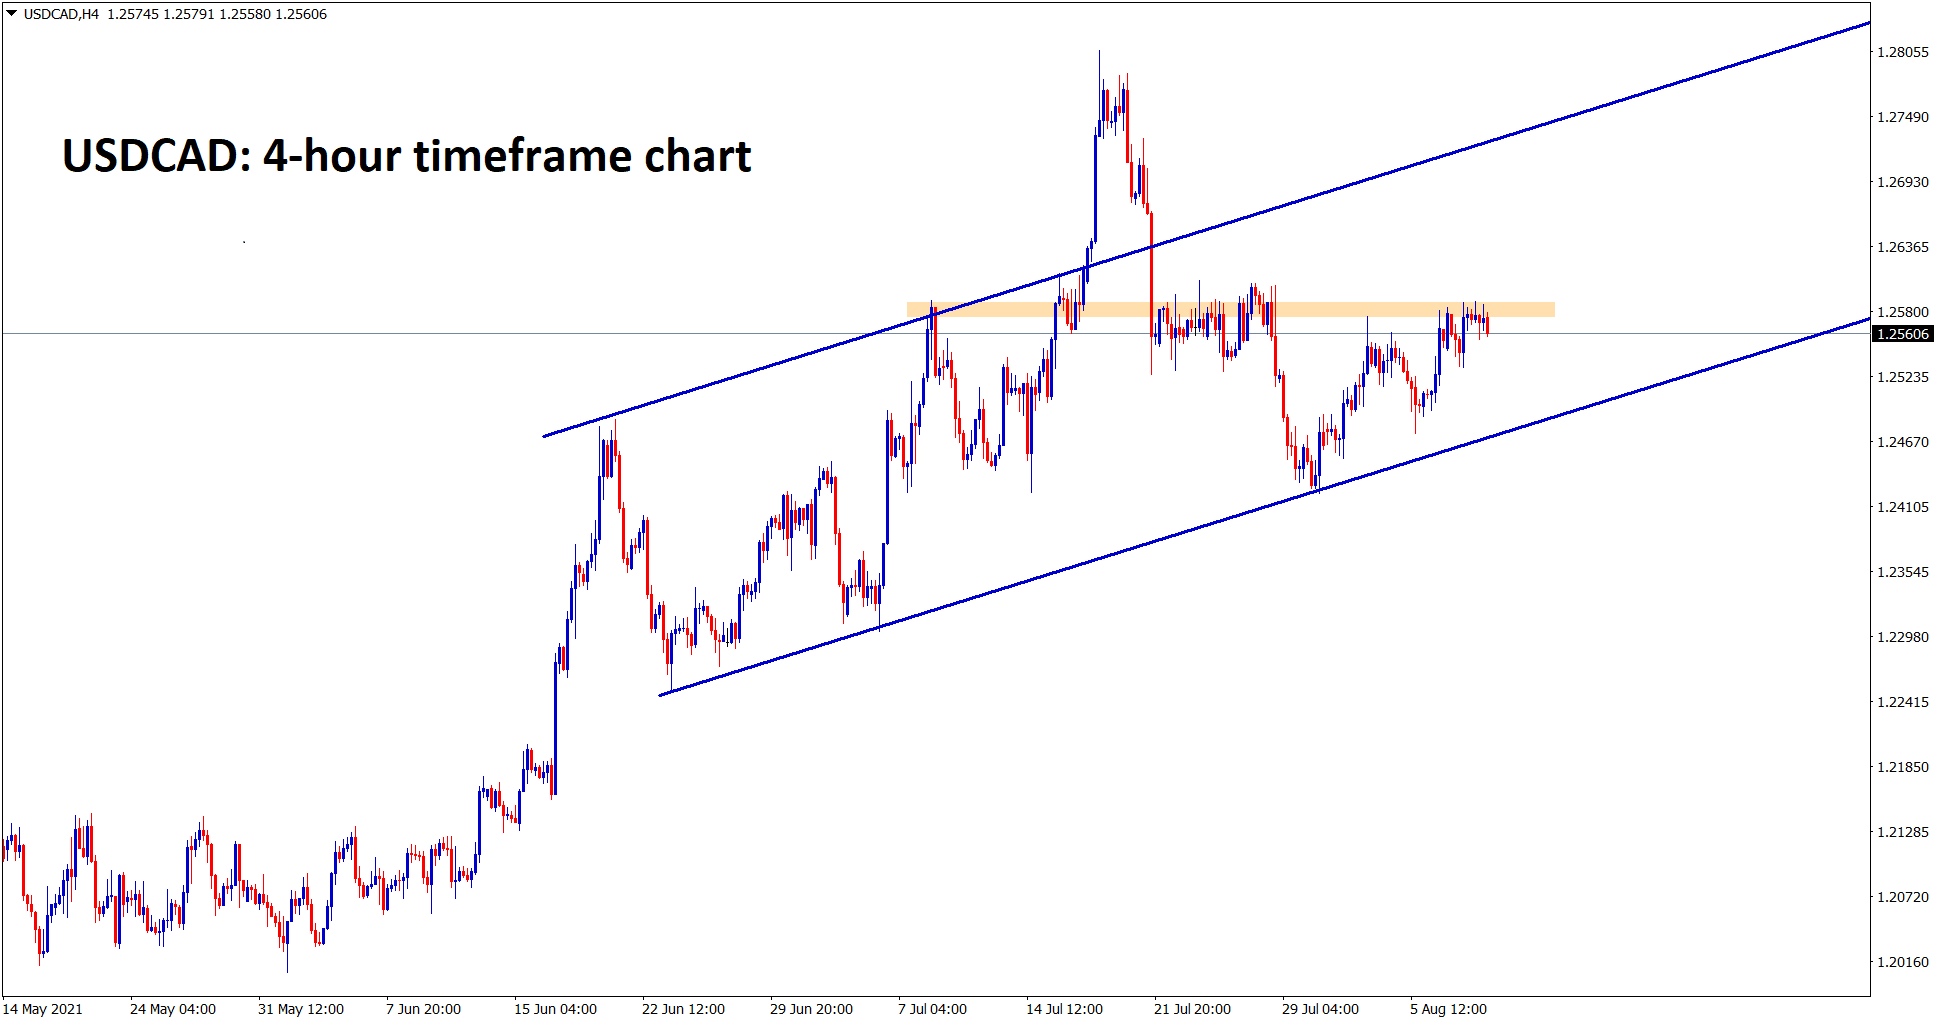 USDCAD is standing at the minor resistance level wait for the reversal or breakout from this zone